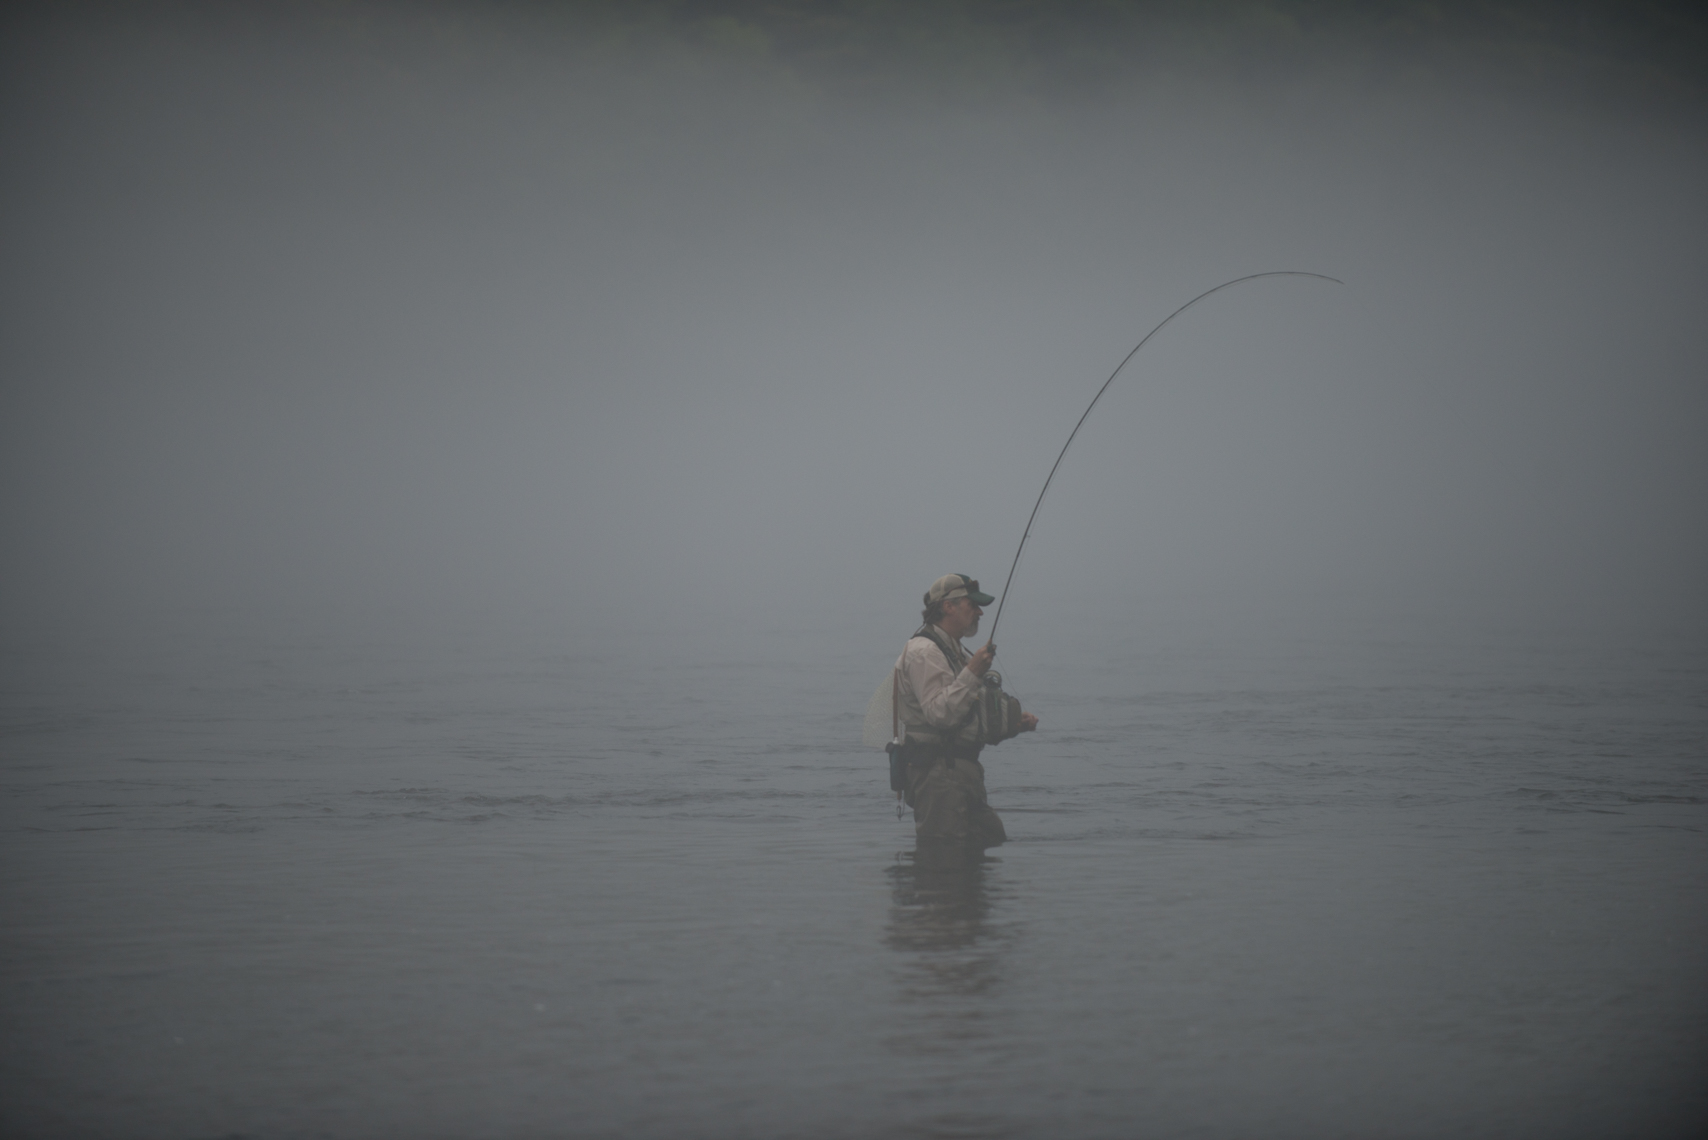 Casting in the fog